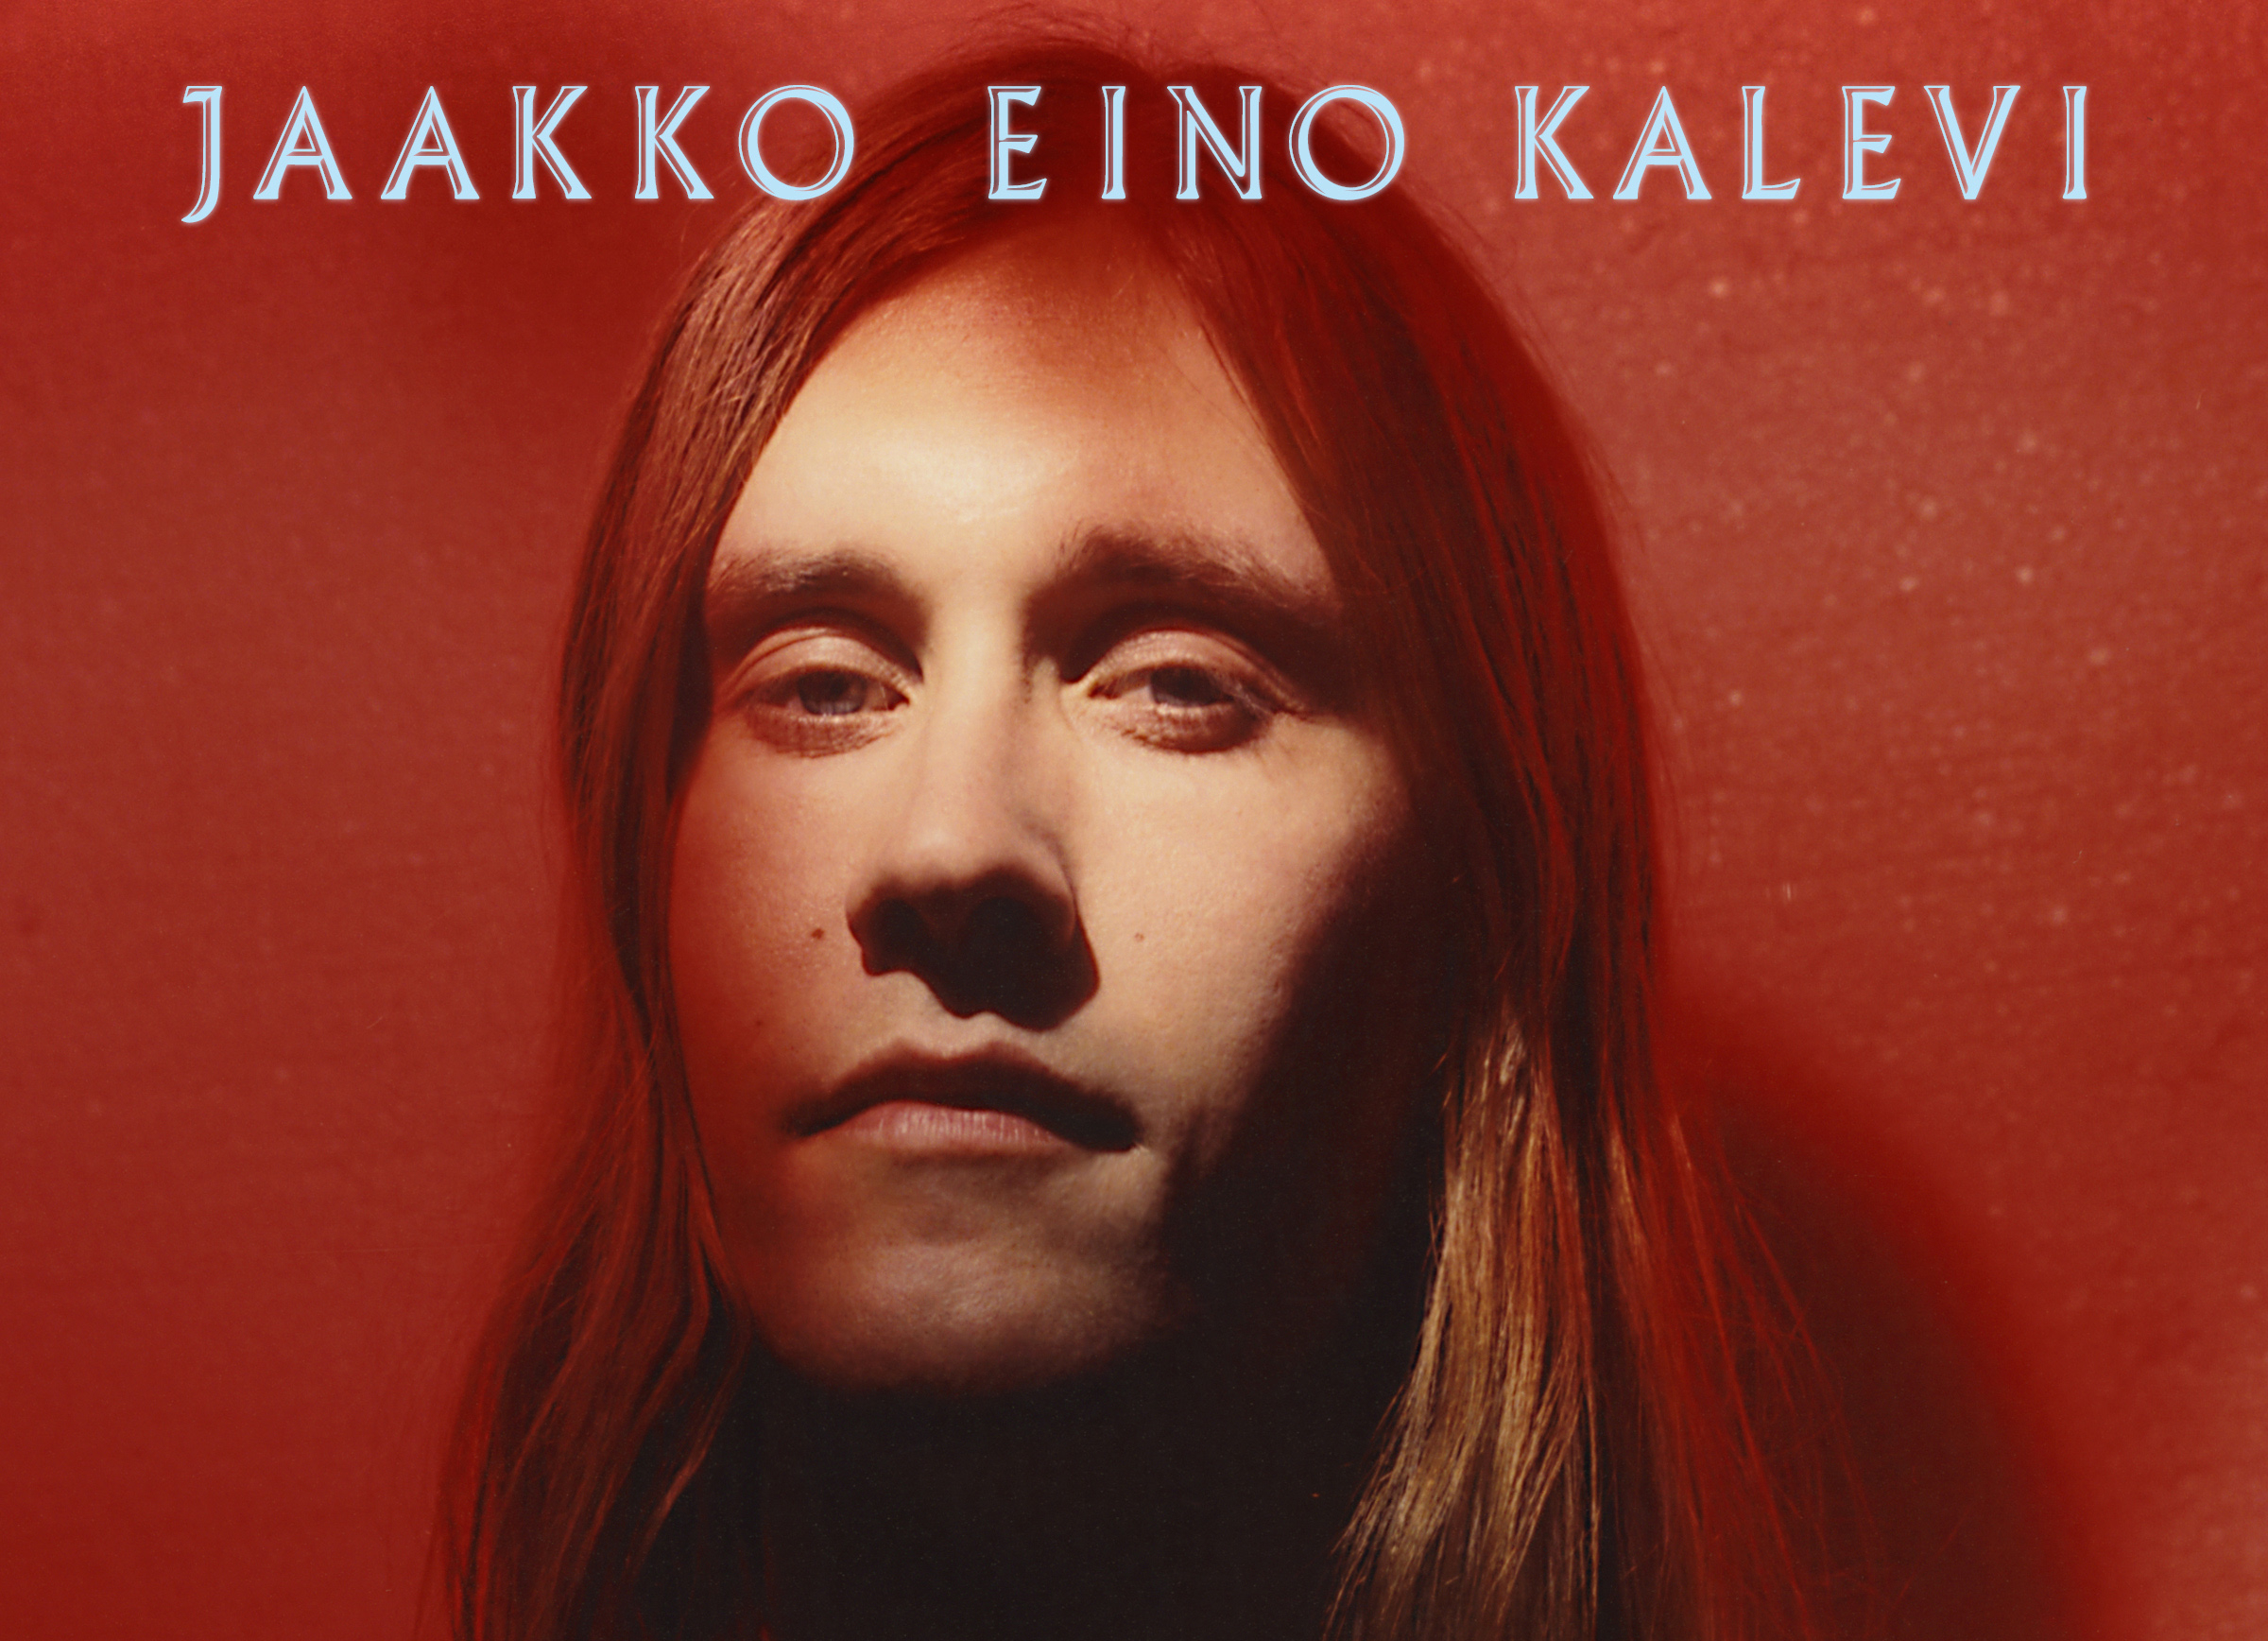 Albums Of The Year So Far: Jaakko Eino Kalevi – Jaakko Eino Kalevi